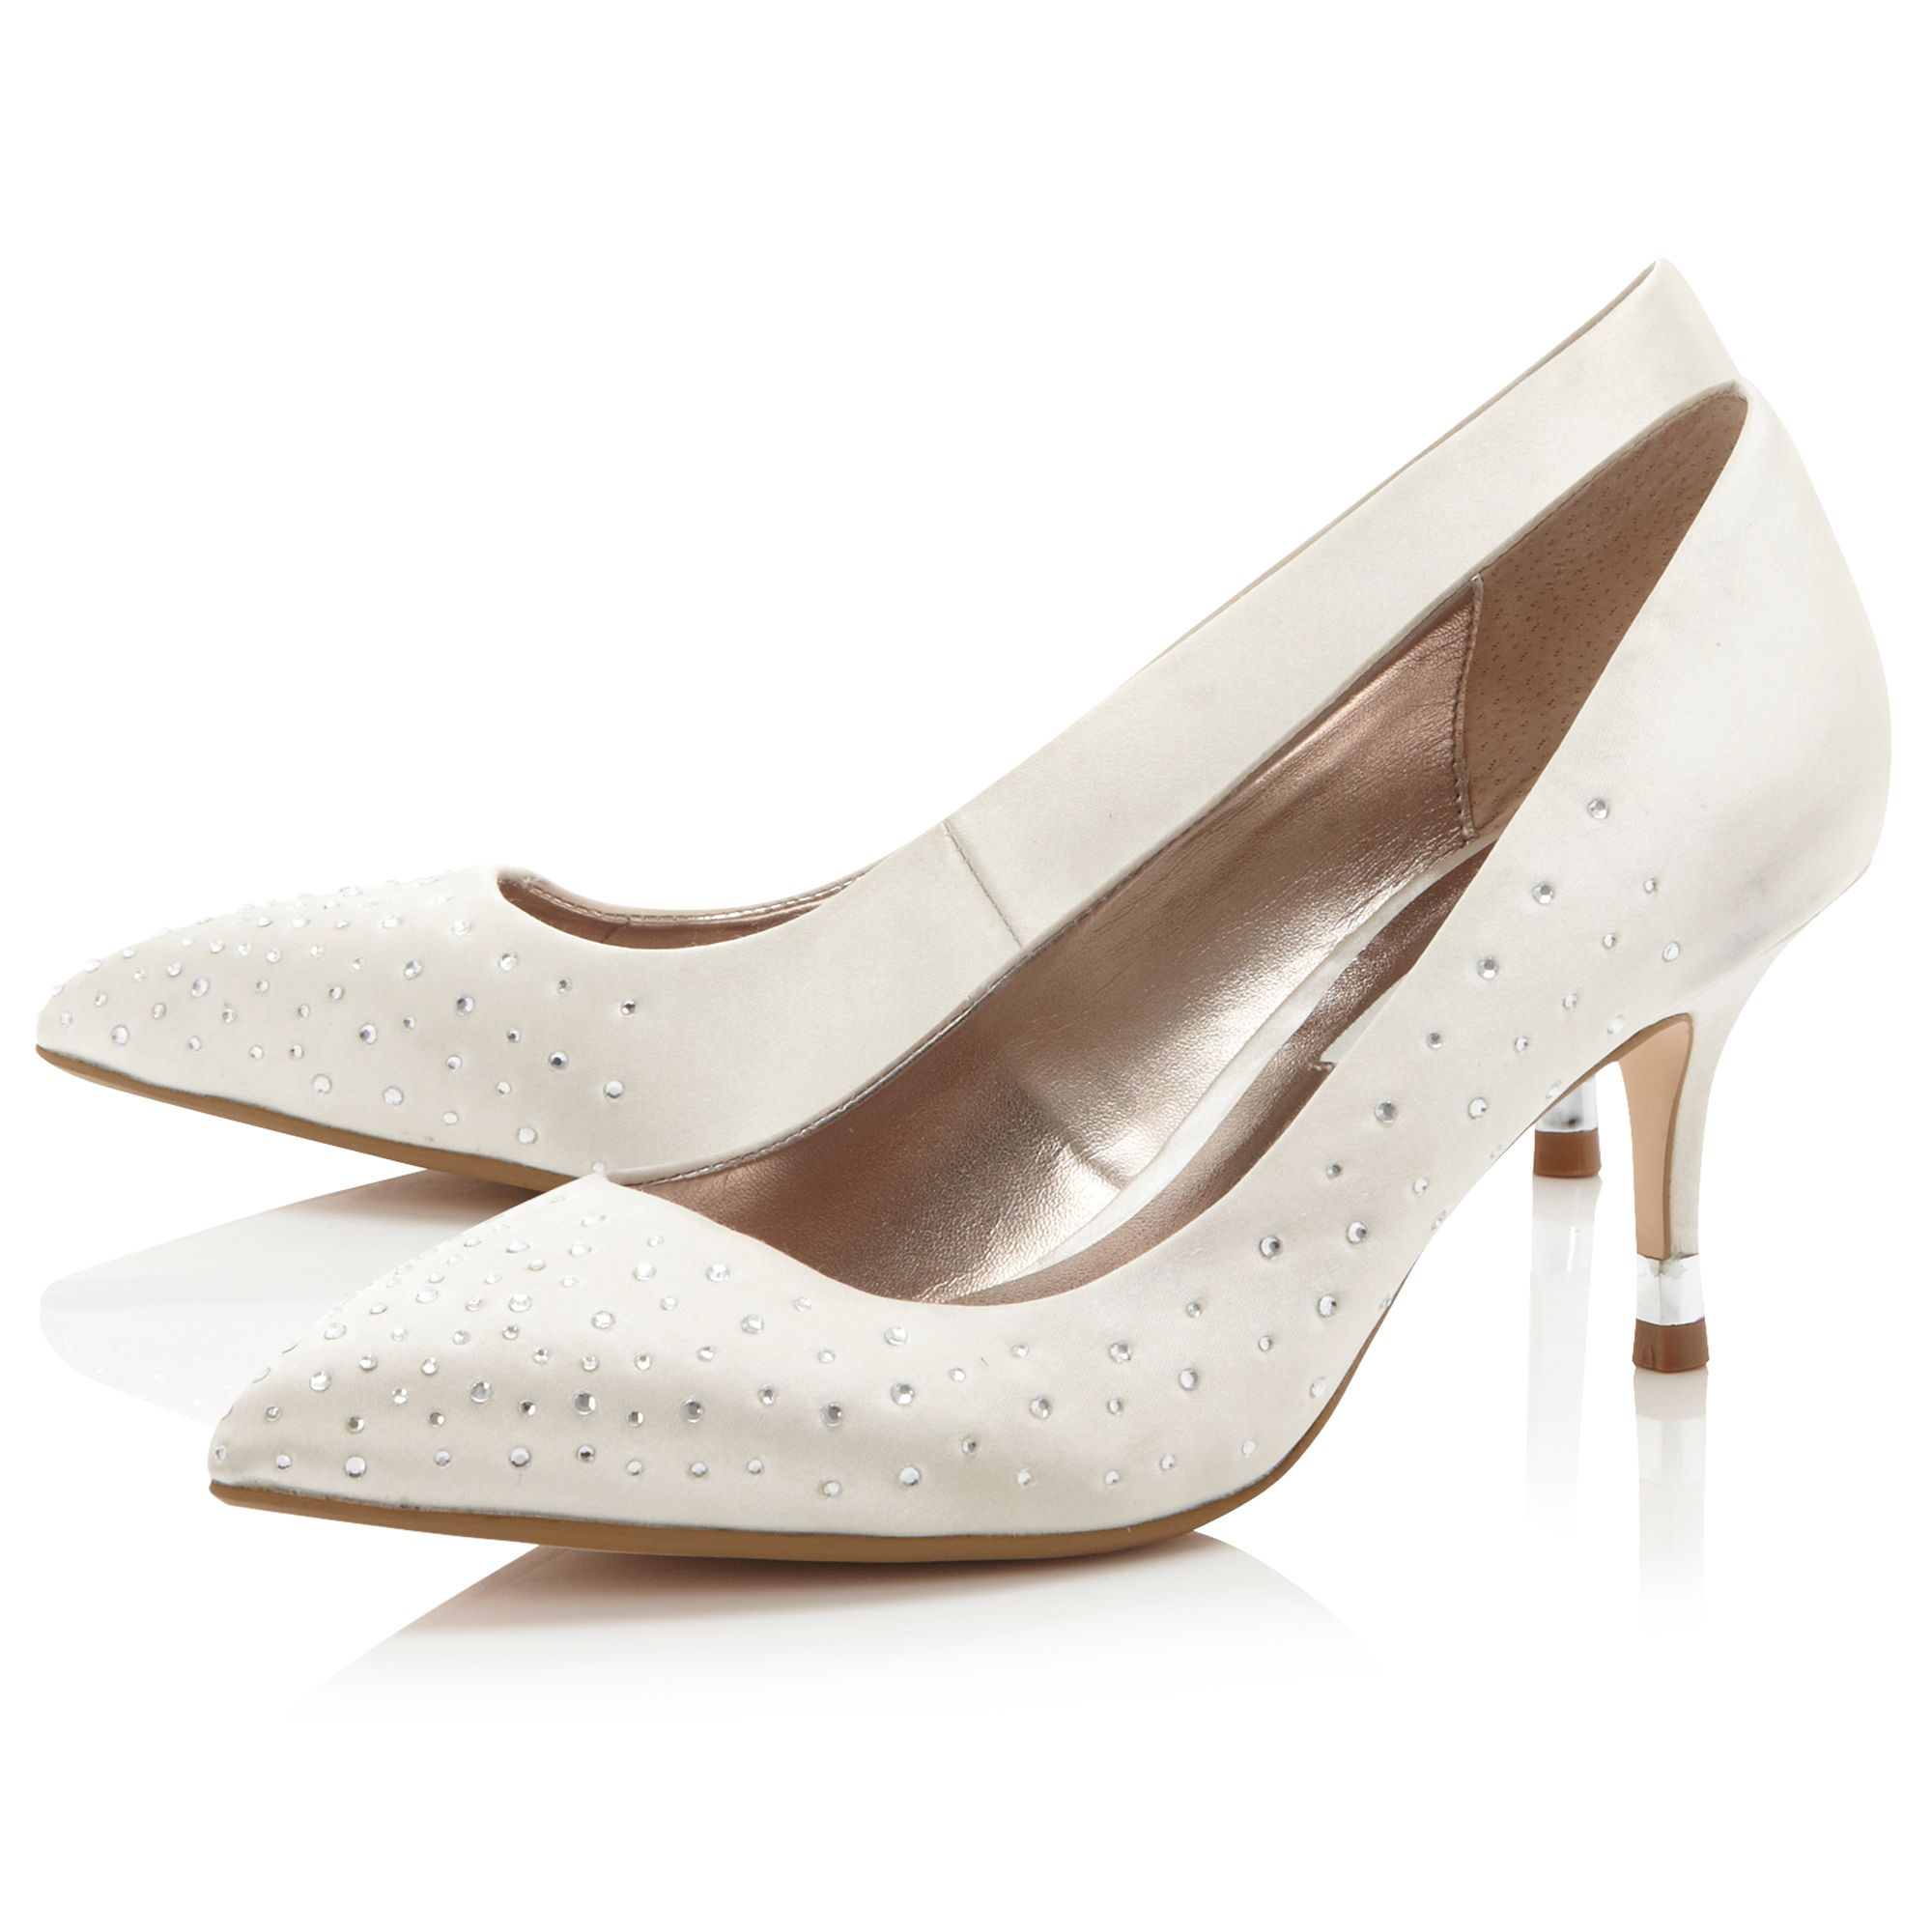 Bridal scattered diamante court shoes